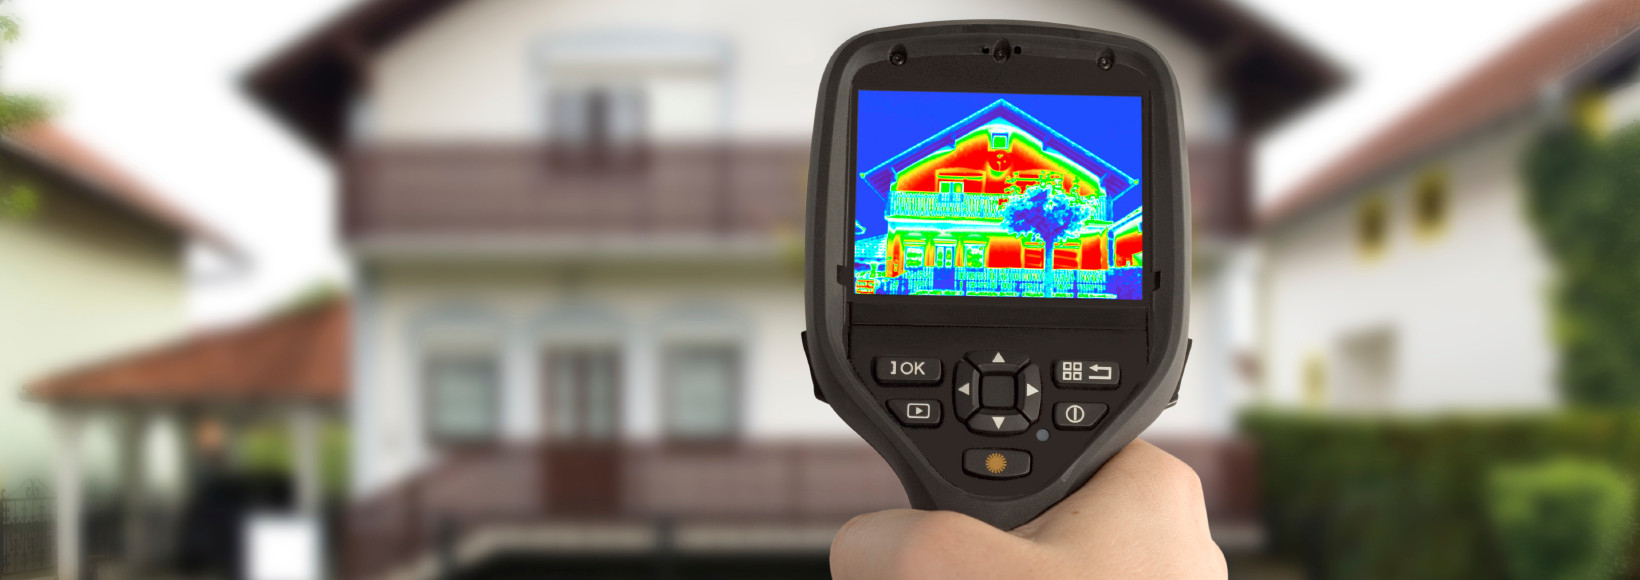 Infrared Thermal Camera